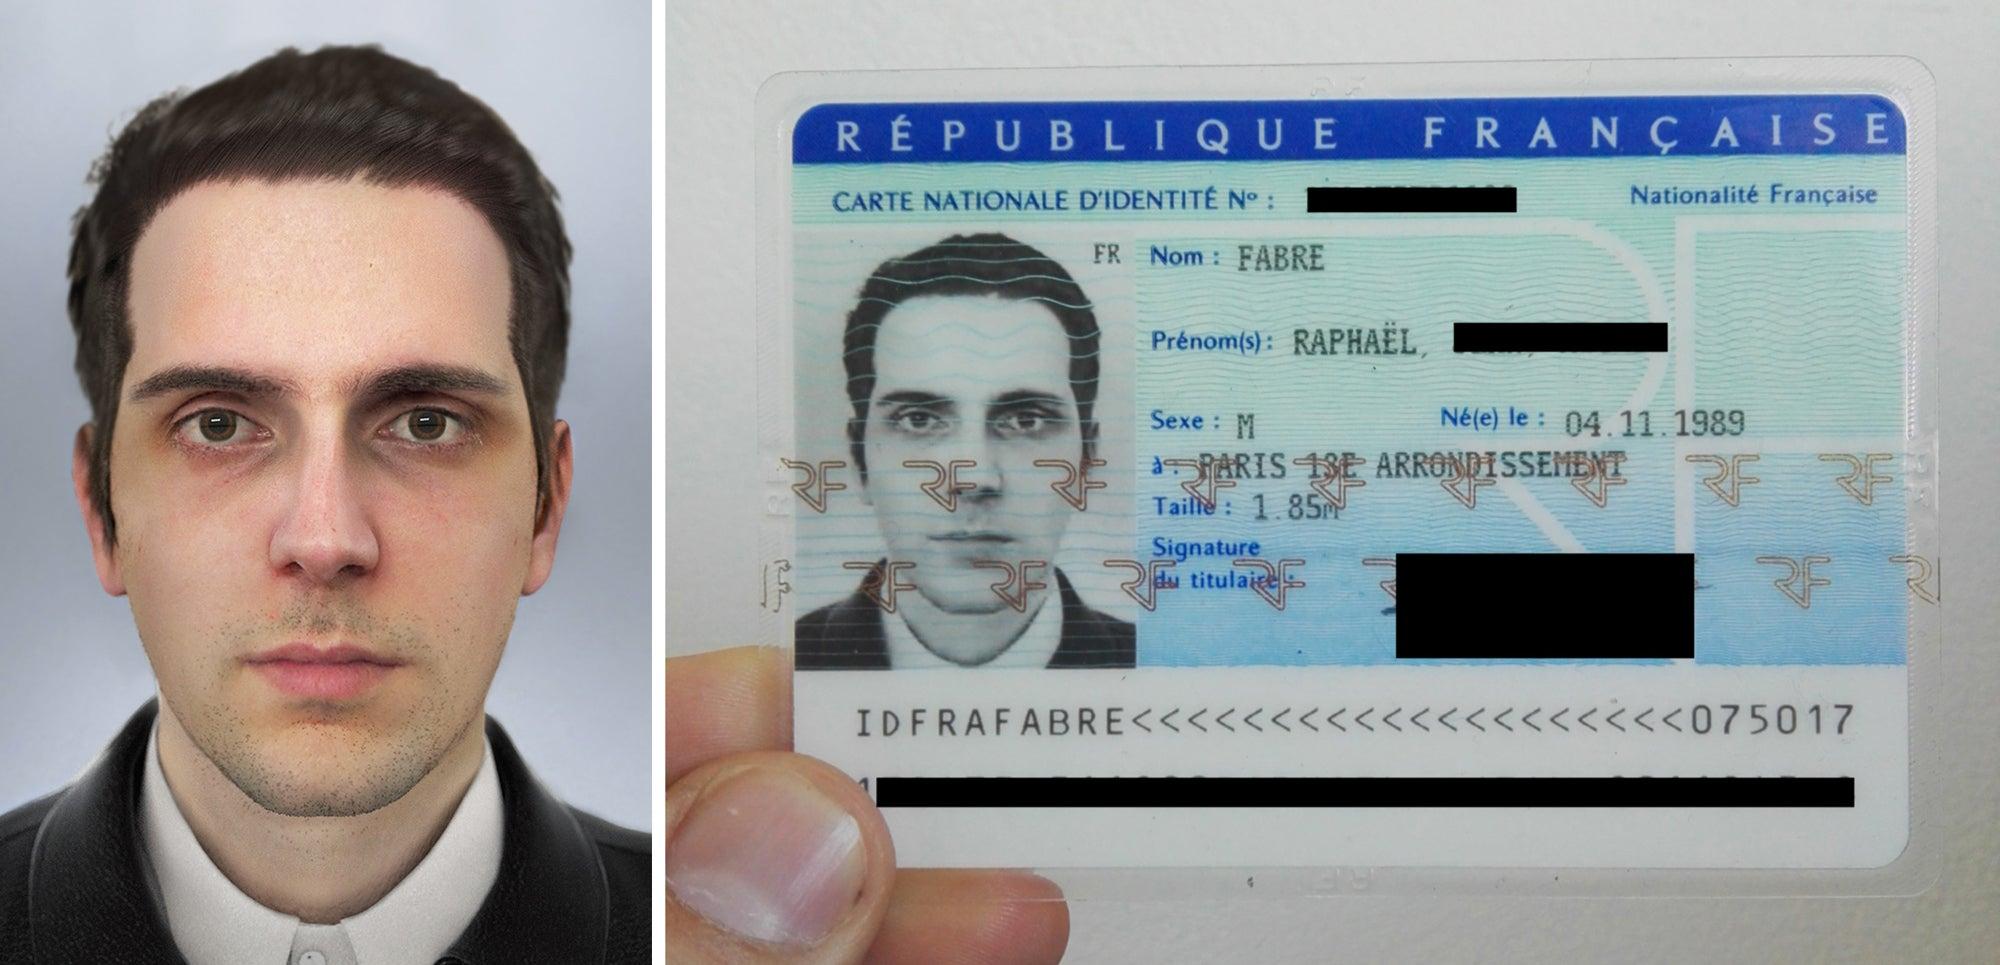 Says A Id French Headshot He Card Computer-generated Using Artist Received National